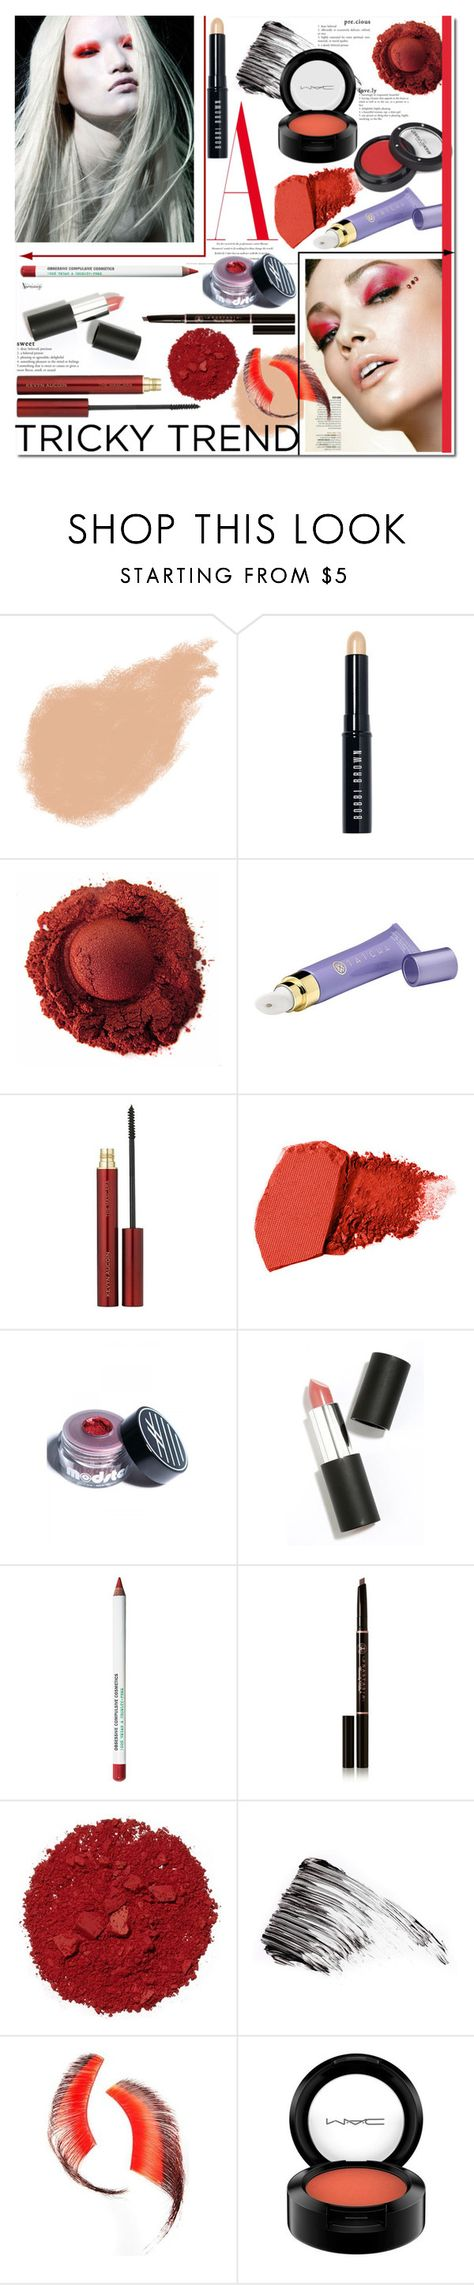 """""""Red Eye Makeup"""" by naomimjc ❤ liked on Polyvore featuring beauty, Bobbi Brown Cosmetics, Tatcha, Kevyn Aucoin, Jane Iredale, Ardency Inn, Sigma Beauty, Obsessive Compulsive Cosmetics, Anastasia Beverly Hills and Illamasqua"""